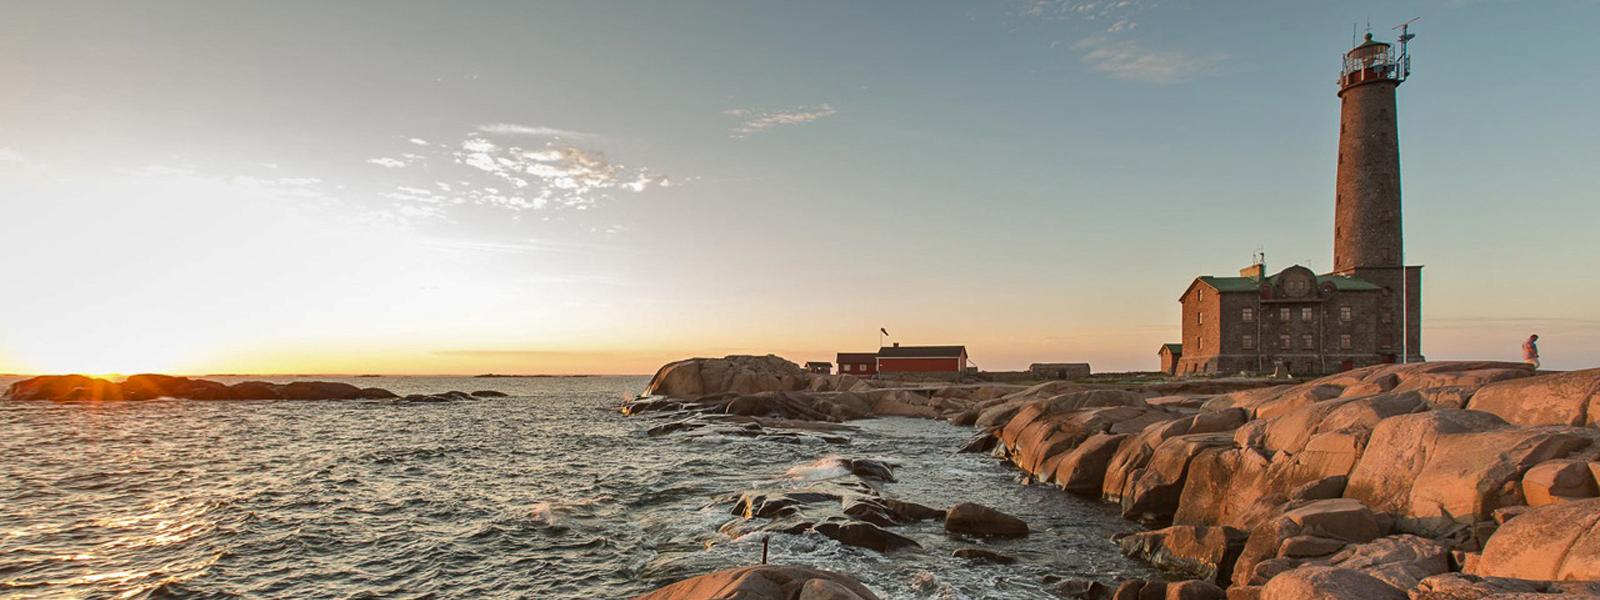 Bengtskär Lighthouse, Finland